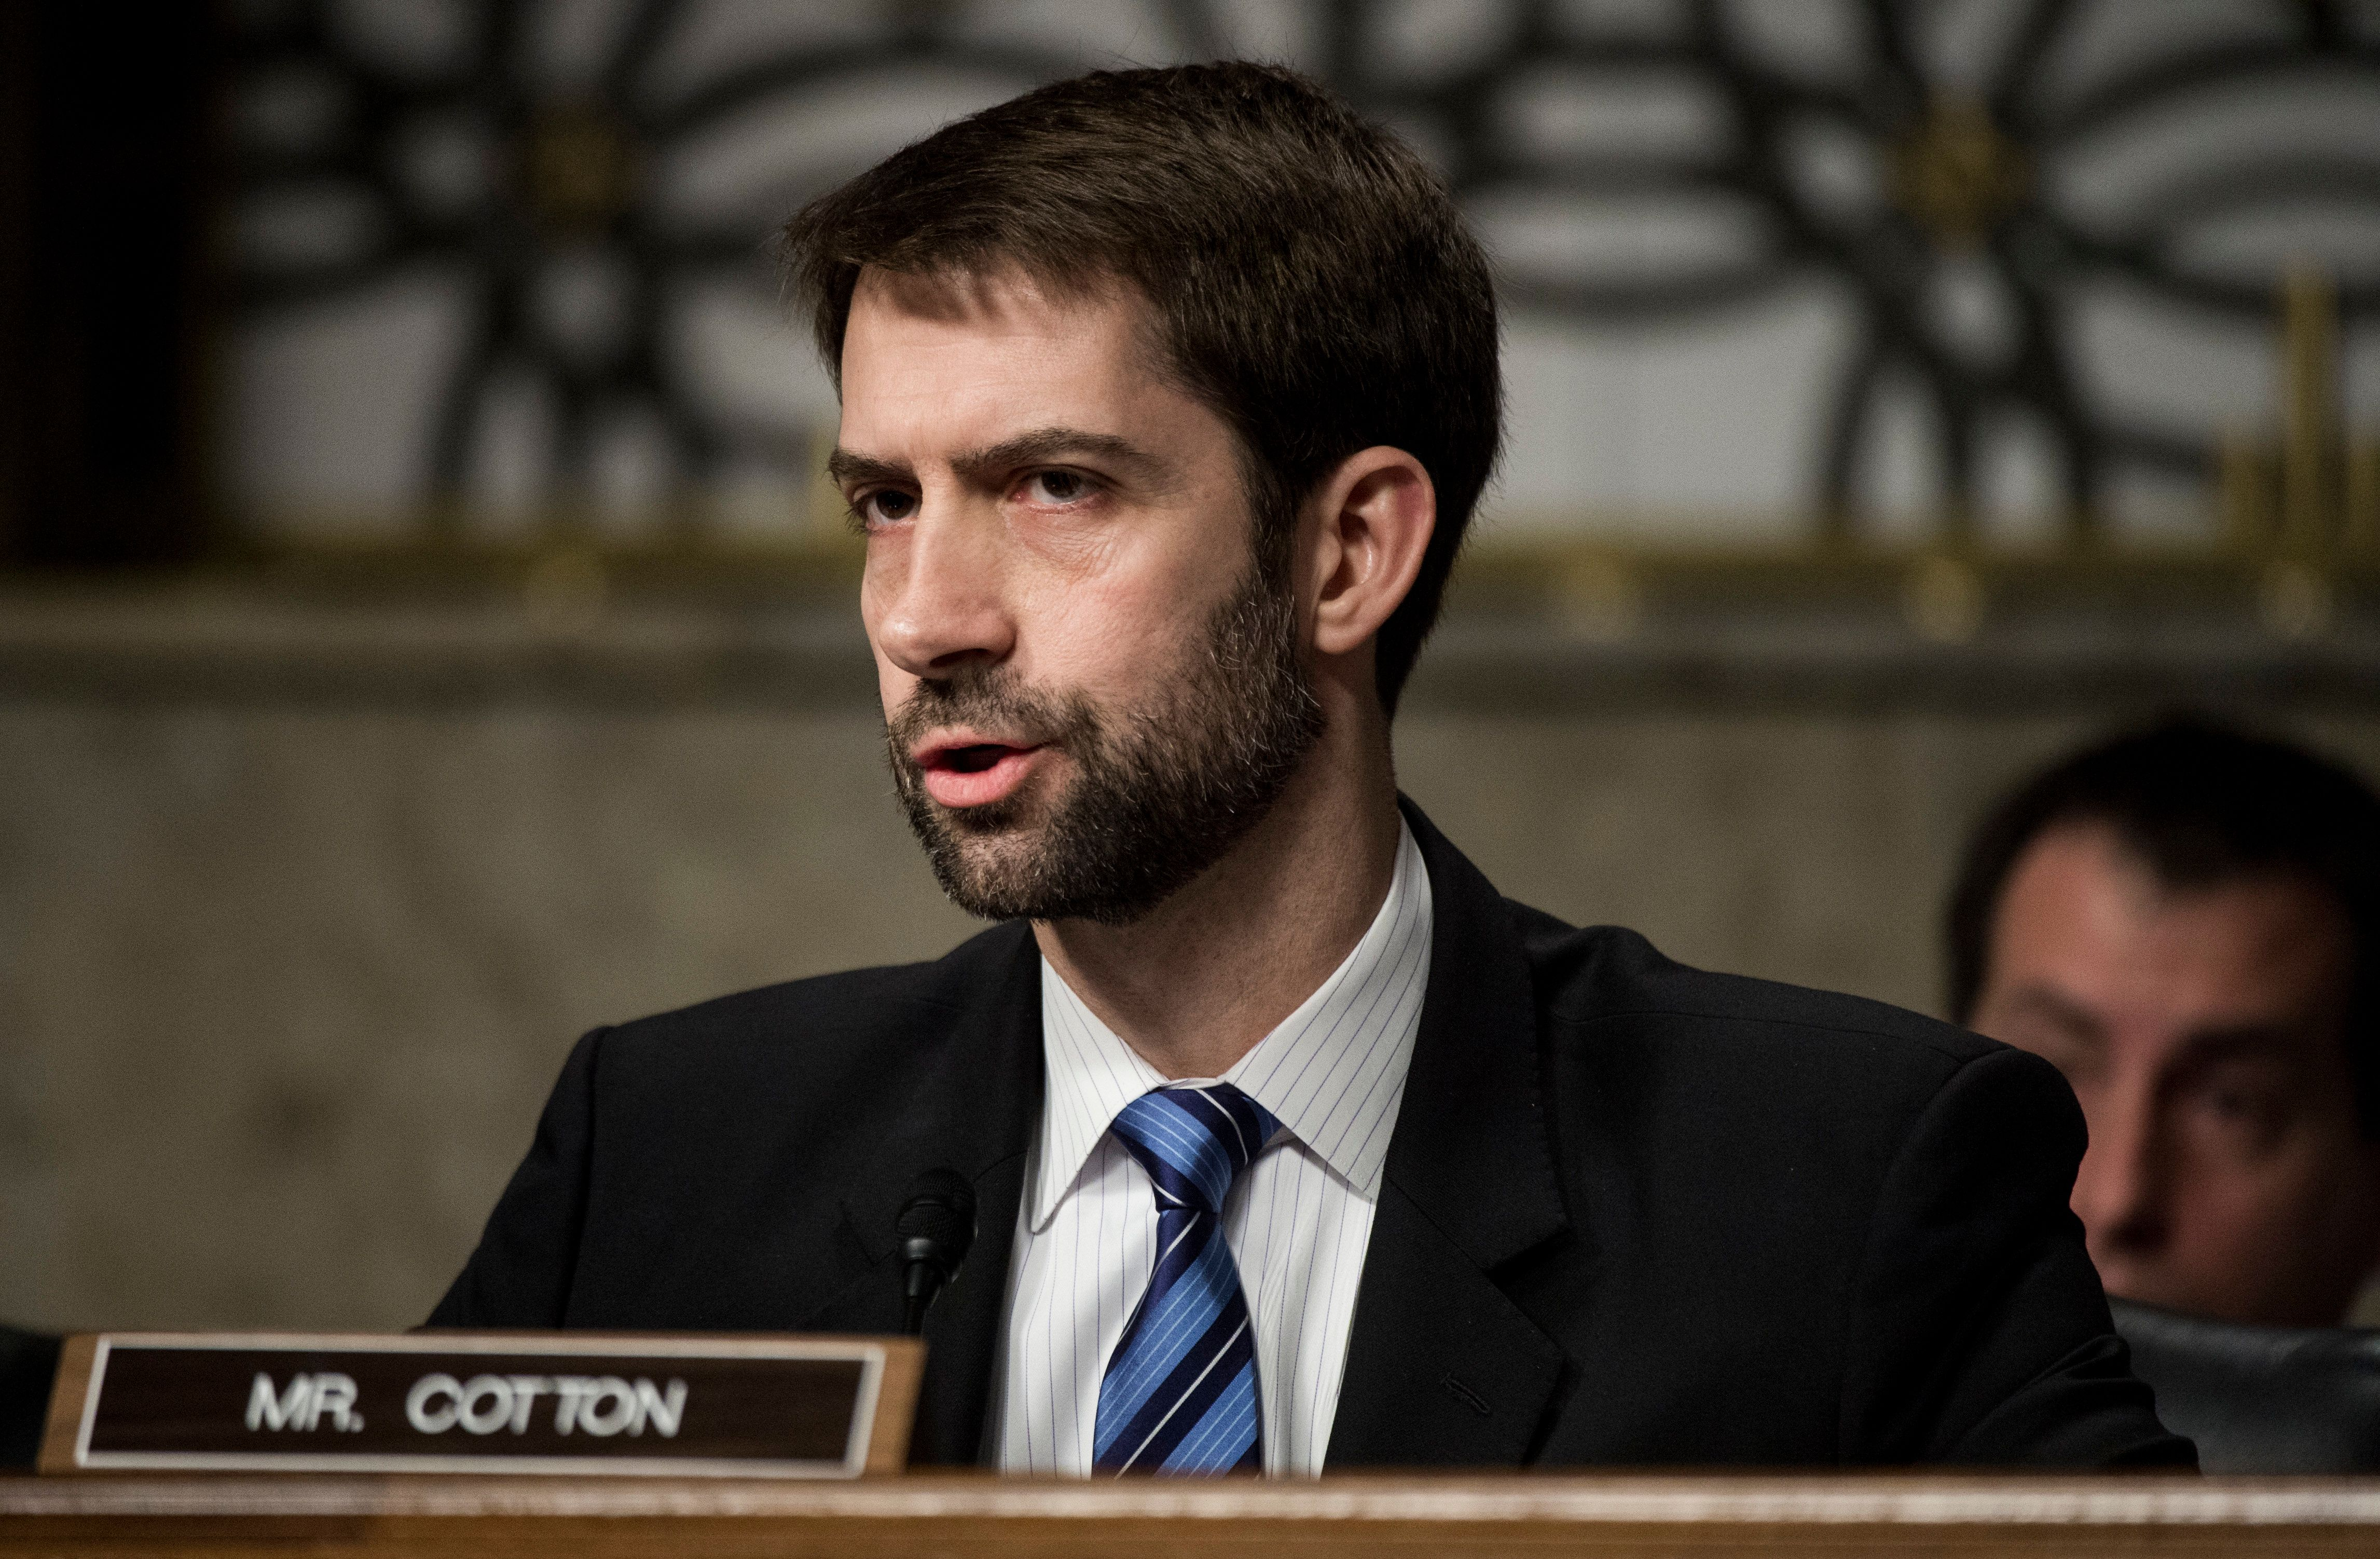 Sen. Tom Cotton (R-Ark.) has beena vocal critic of efforts to reform the criminal justice system.